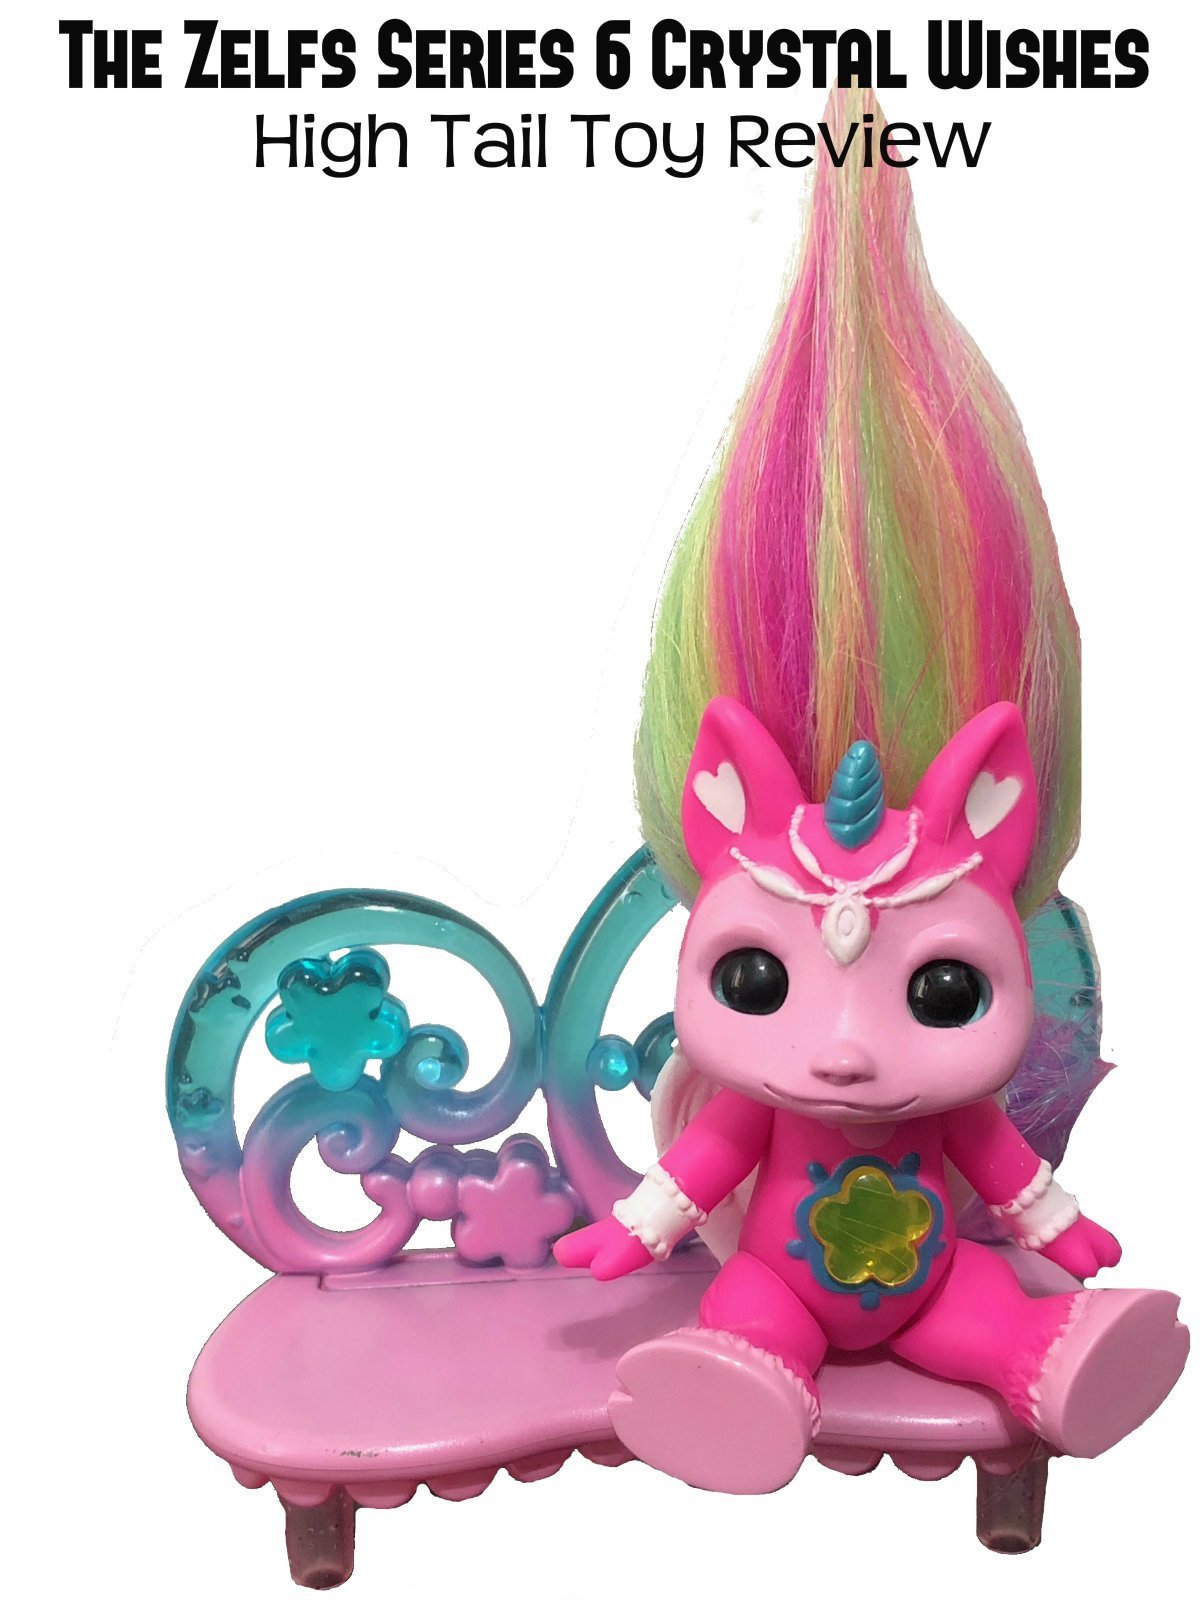 Review: The Zelfs Series 6 Crystal Wishes High Tail Toy Review